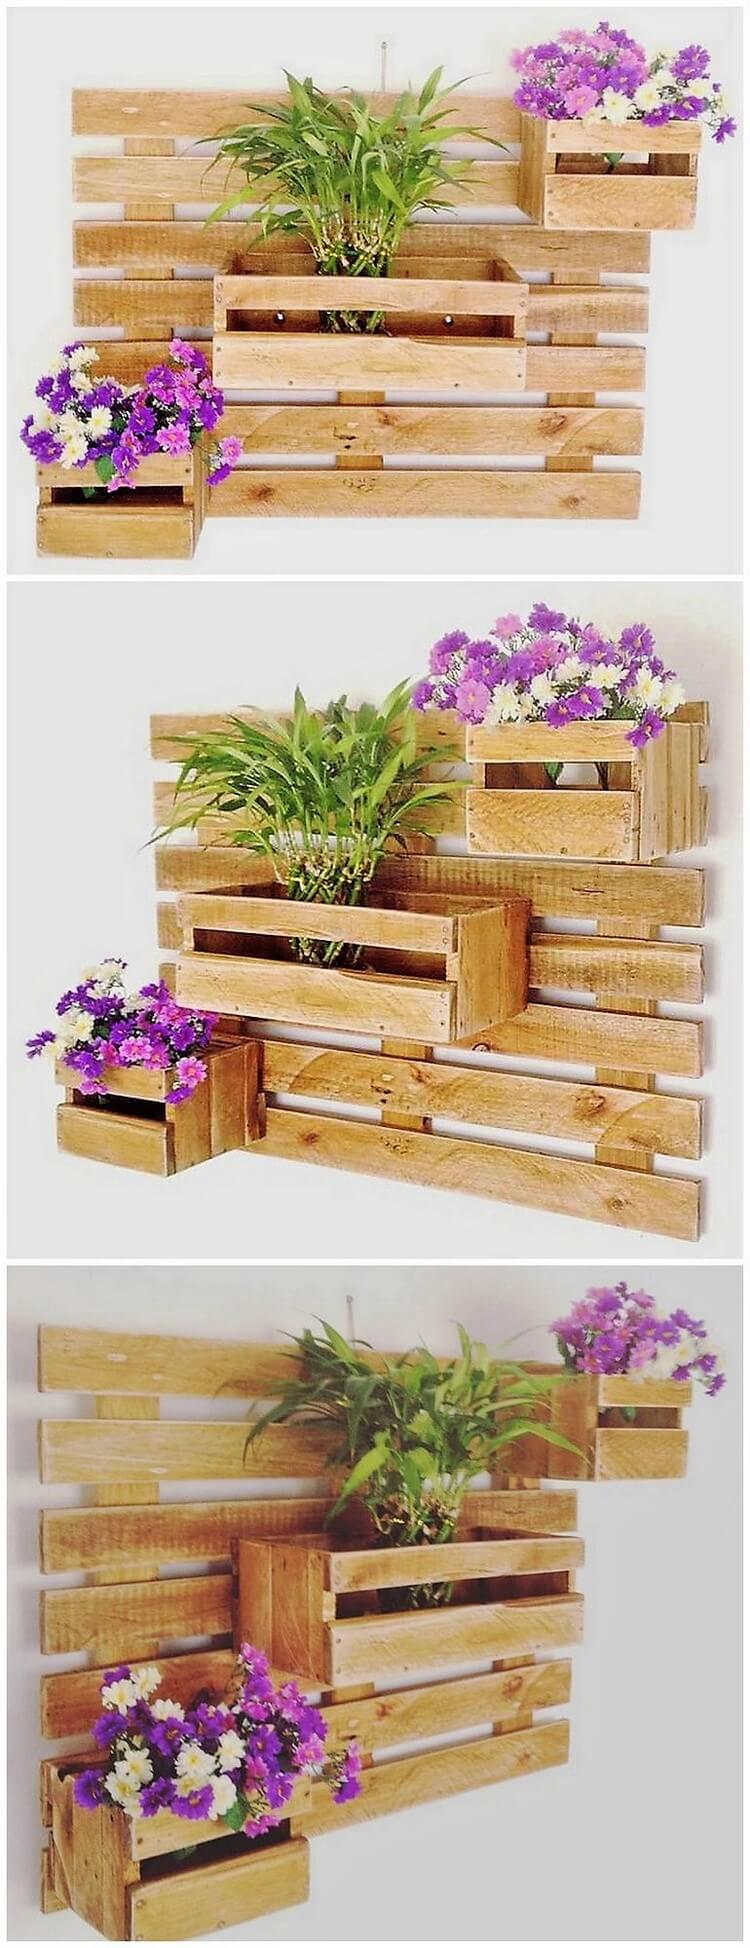 Pallet Wall Decor Planter